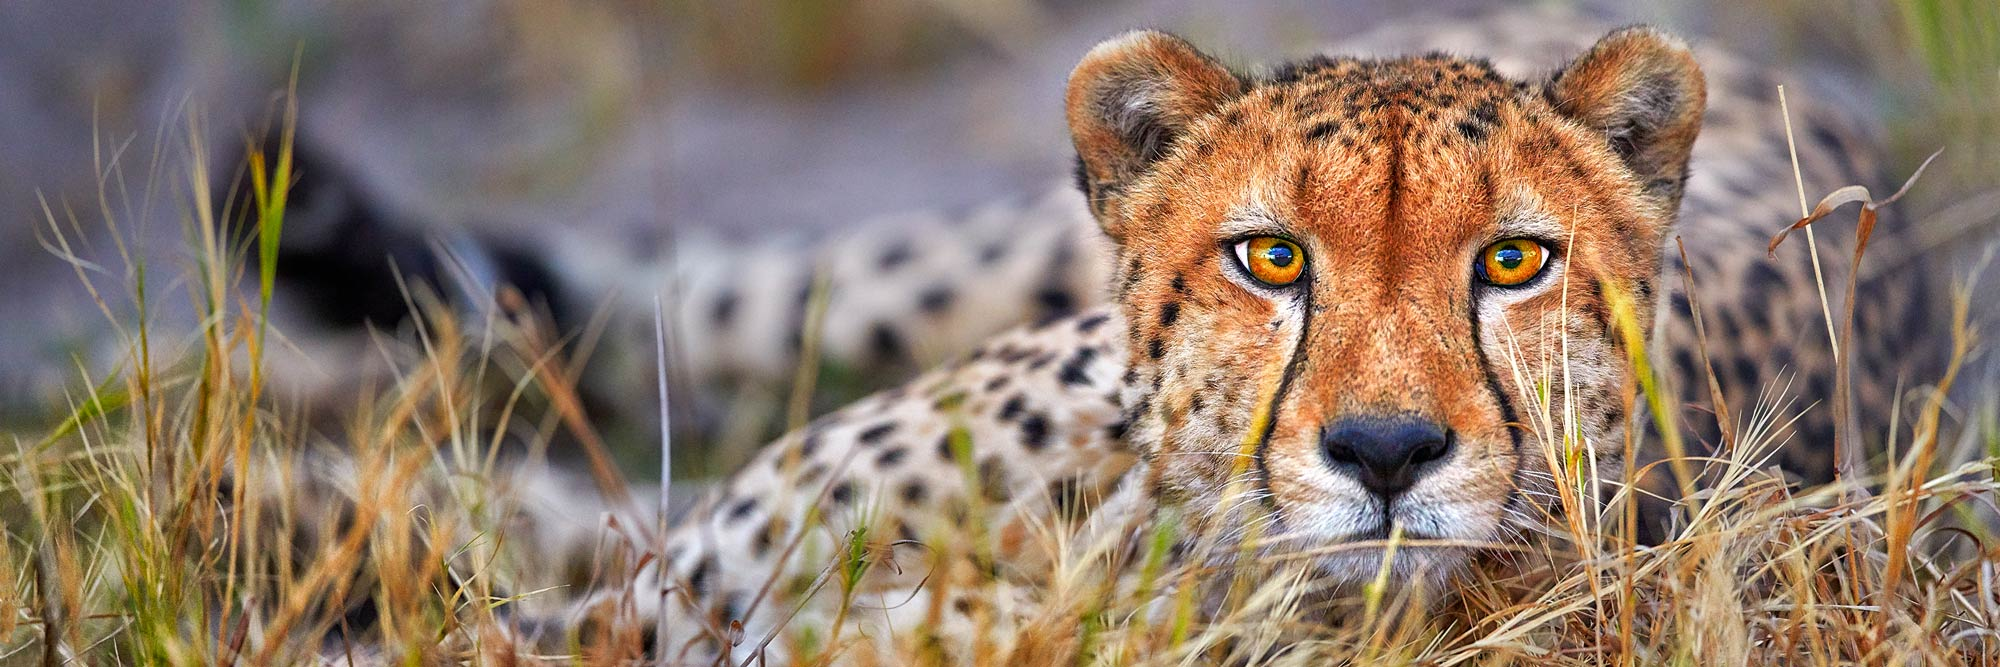 A Cheetah Staring directly into camera